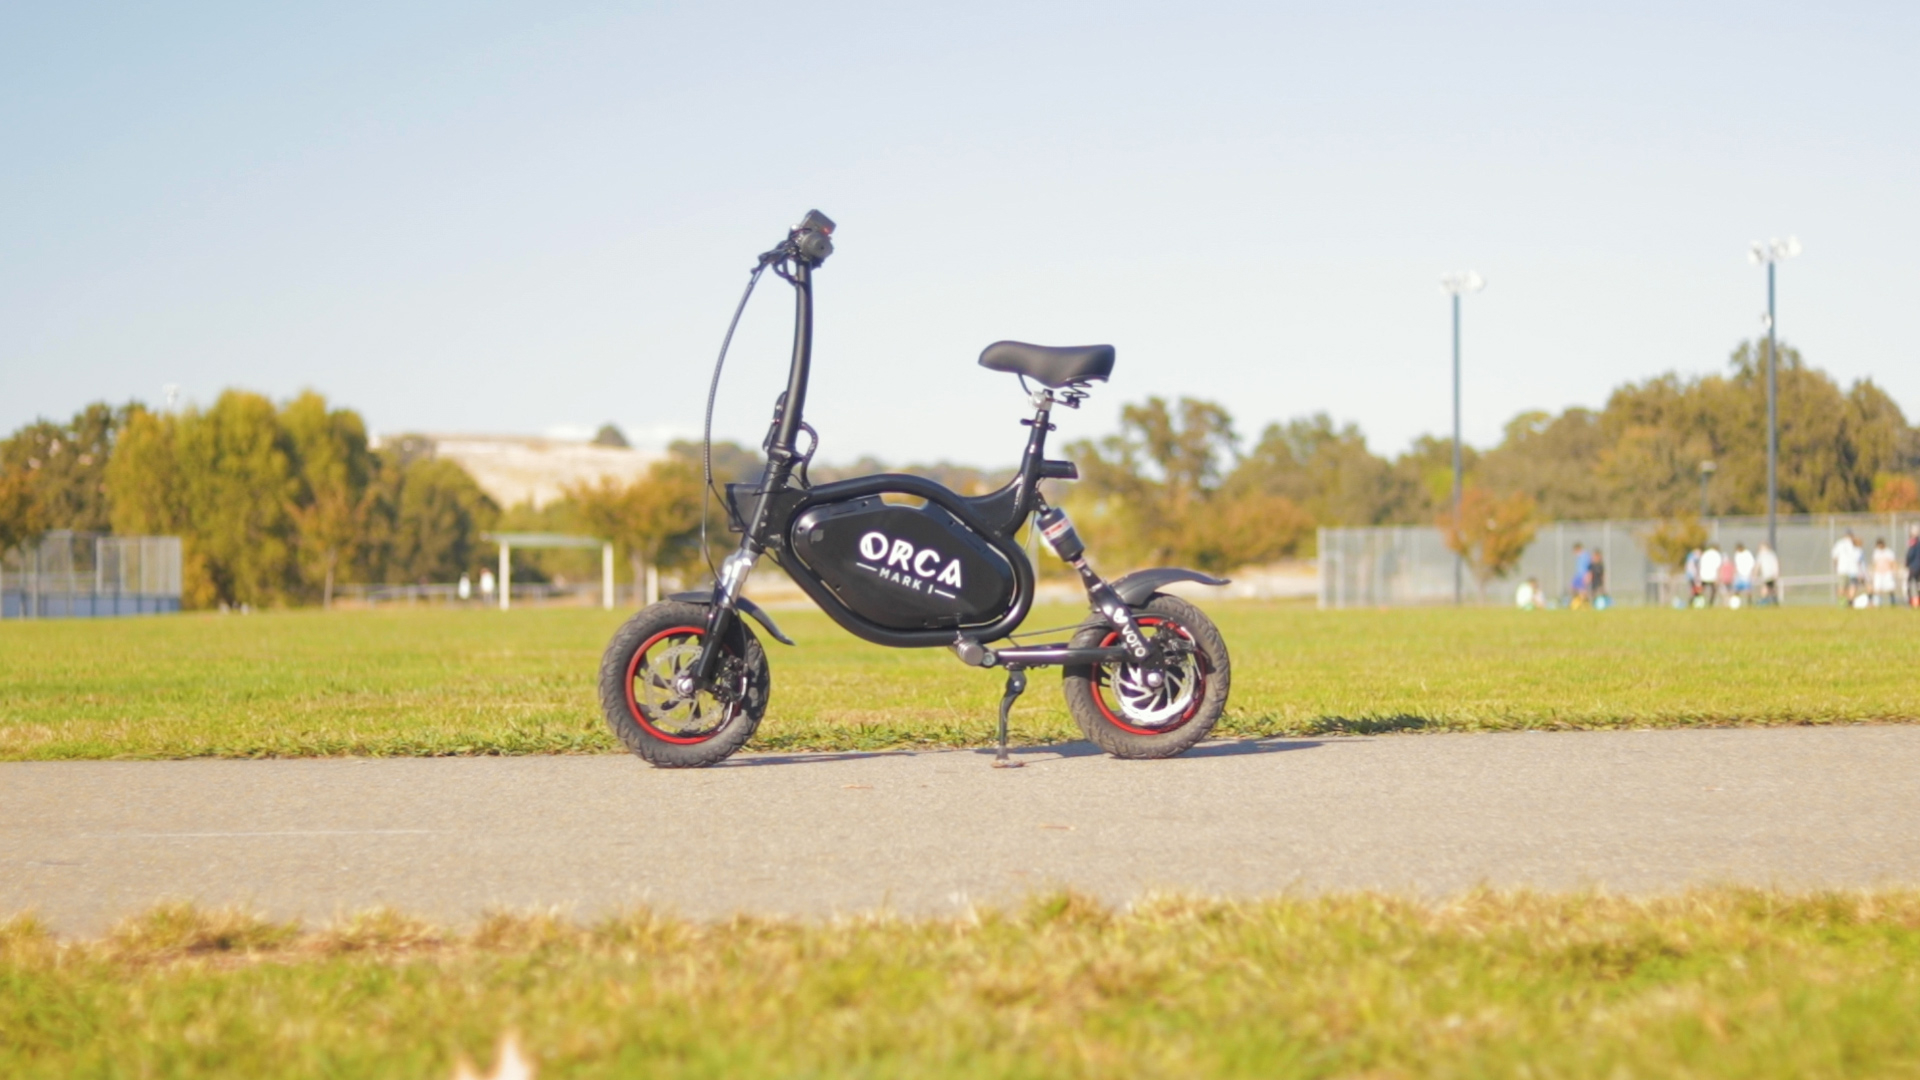 voro-motors-orca-mark-1-electric-scooter-review-2019-profile-main.jpg